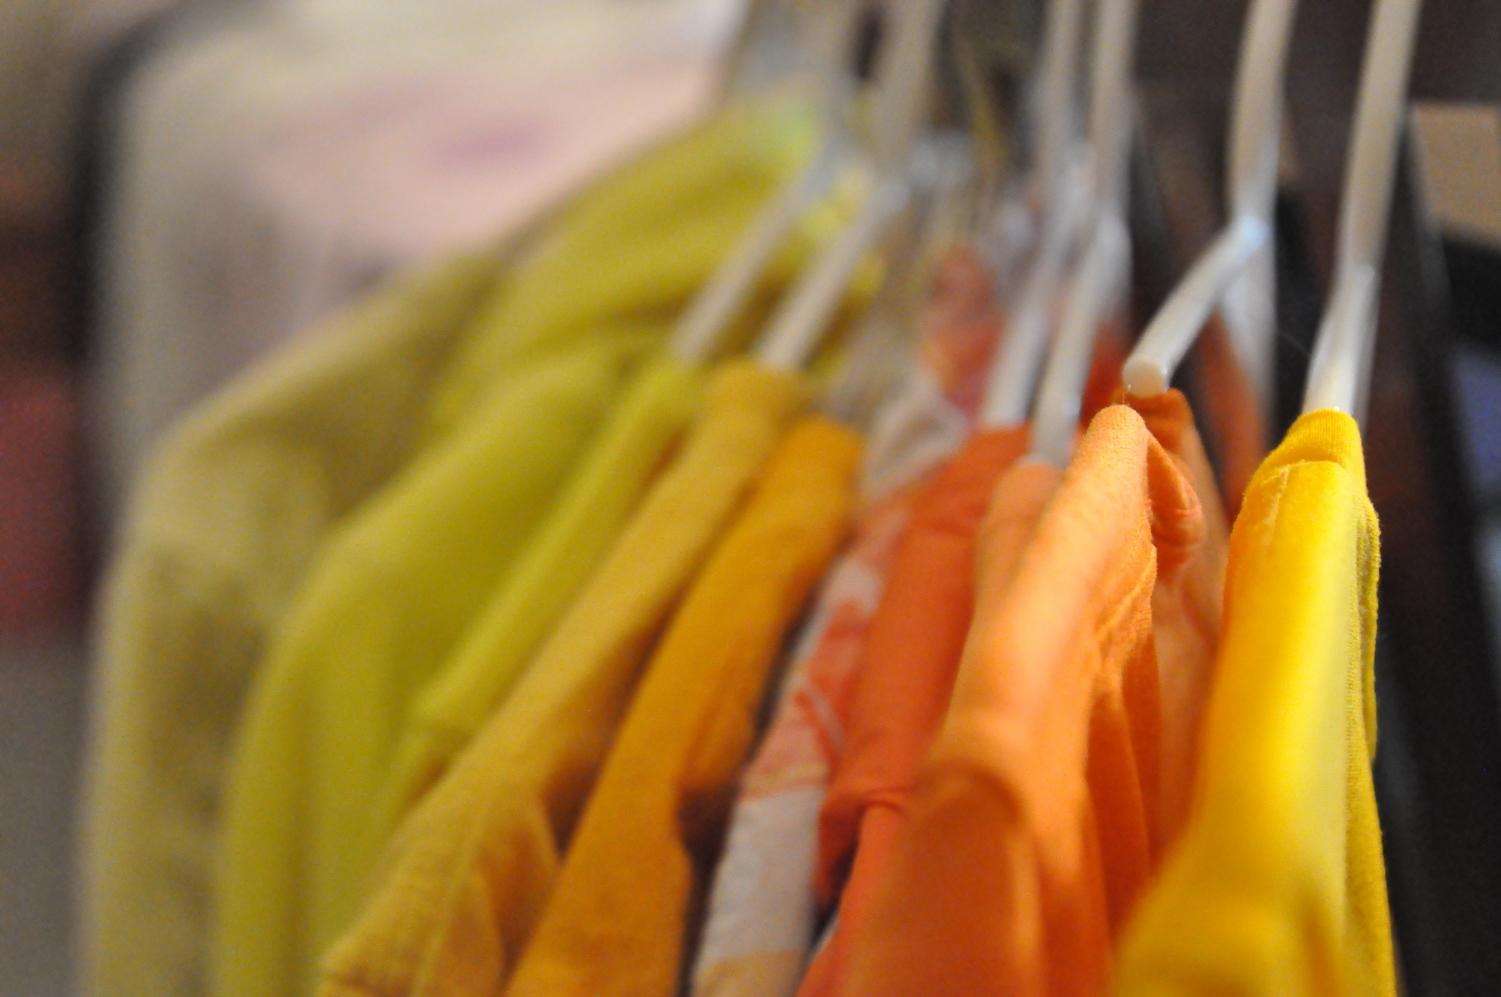 My entire collection of orange and yellow T-shirts, jackets and flannels.